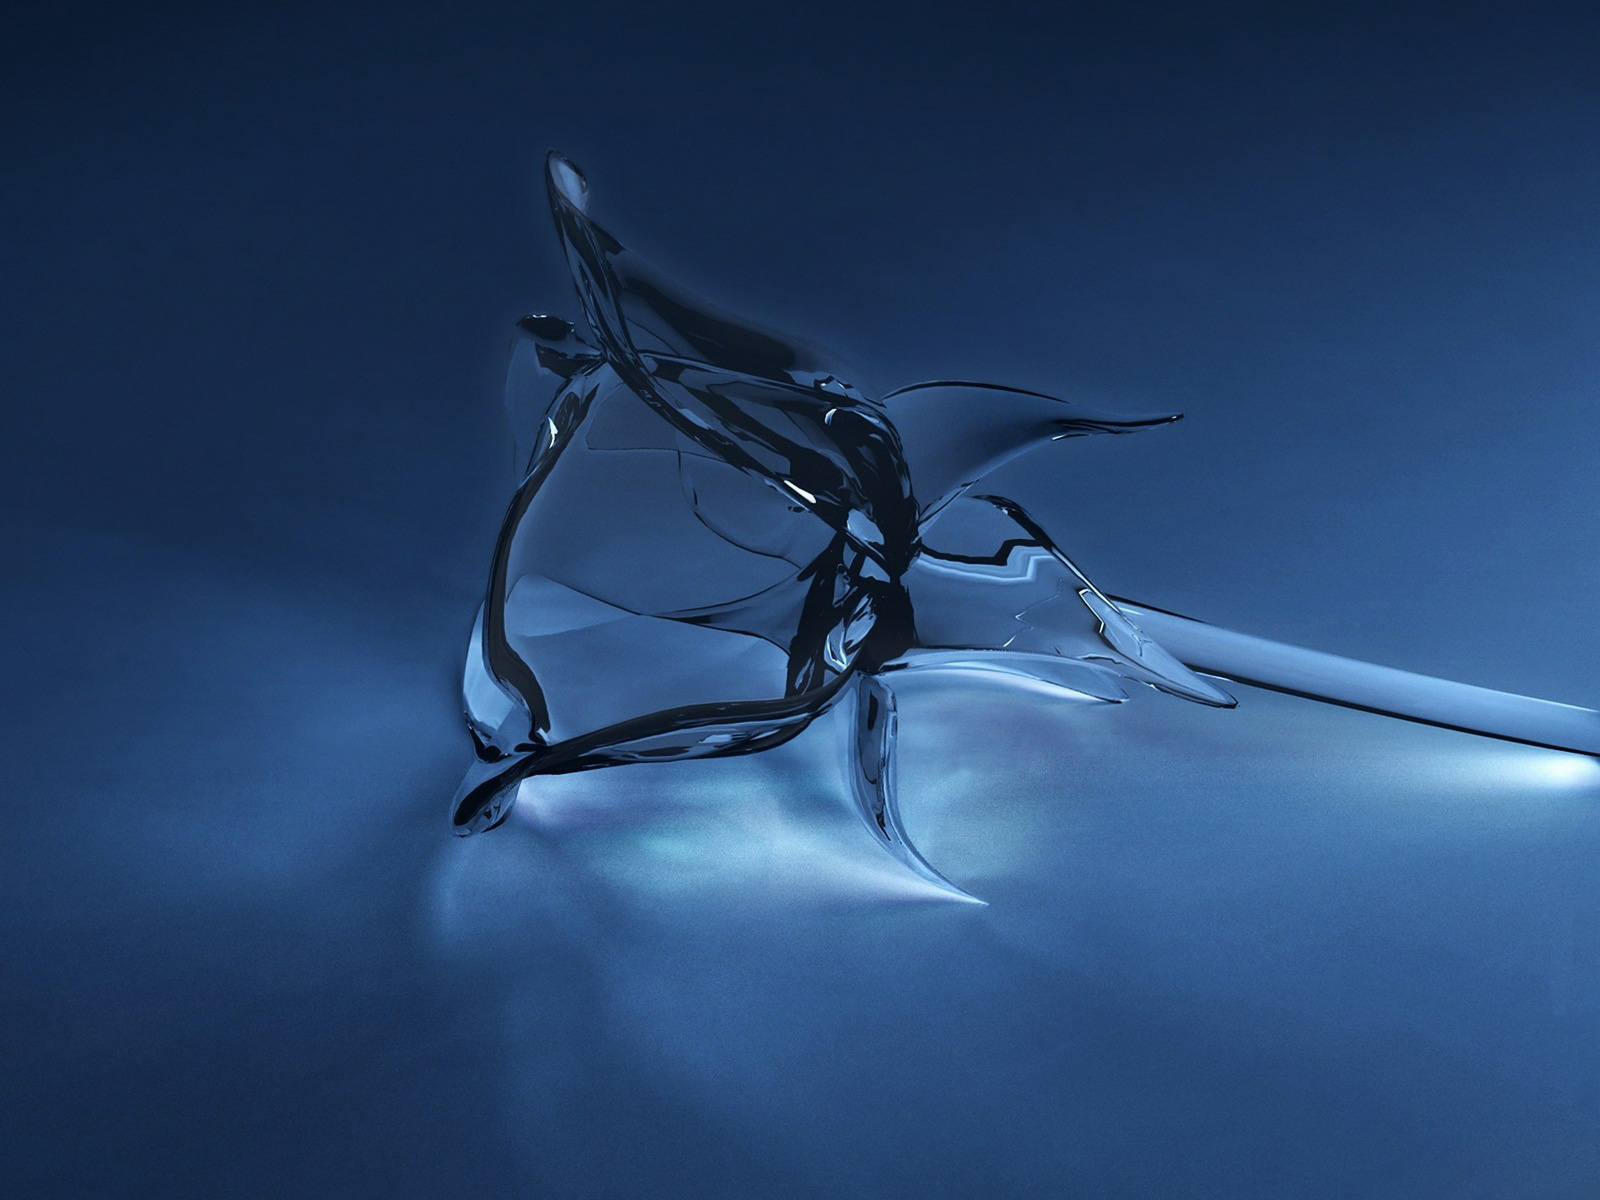 Download 3D CG PC Wallpapers Download 3D PC Collection 1600x1200